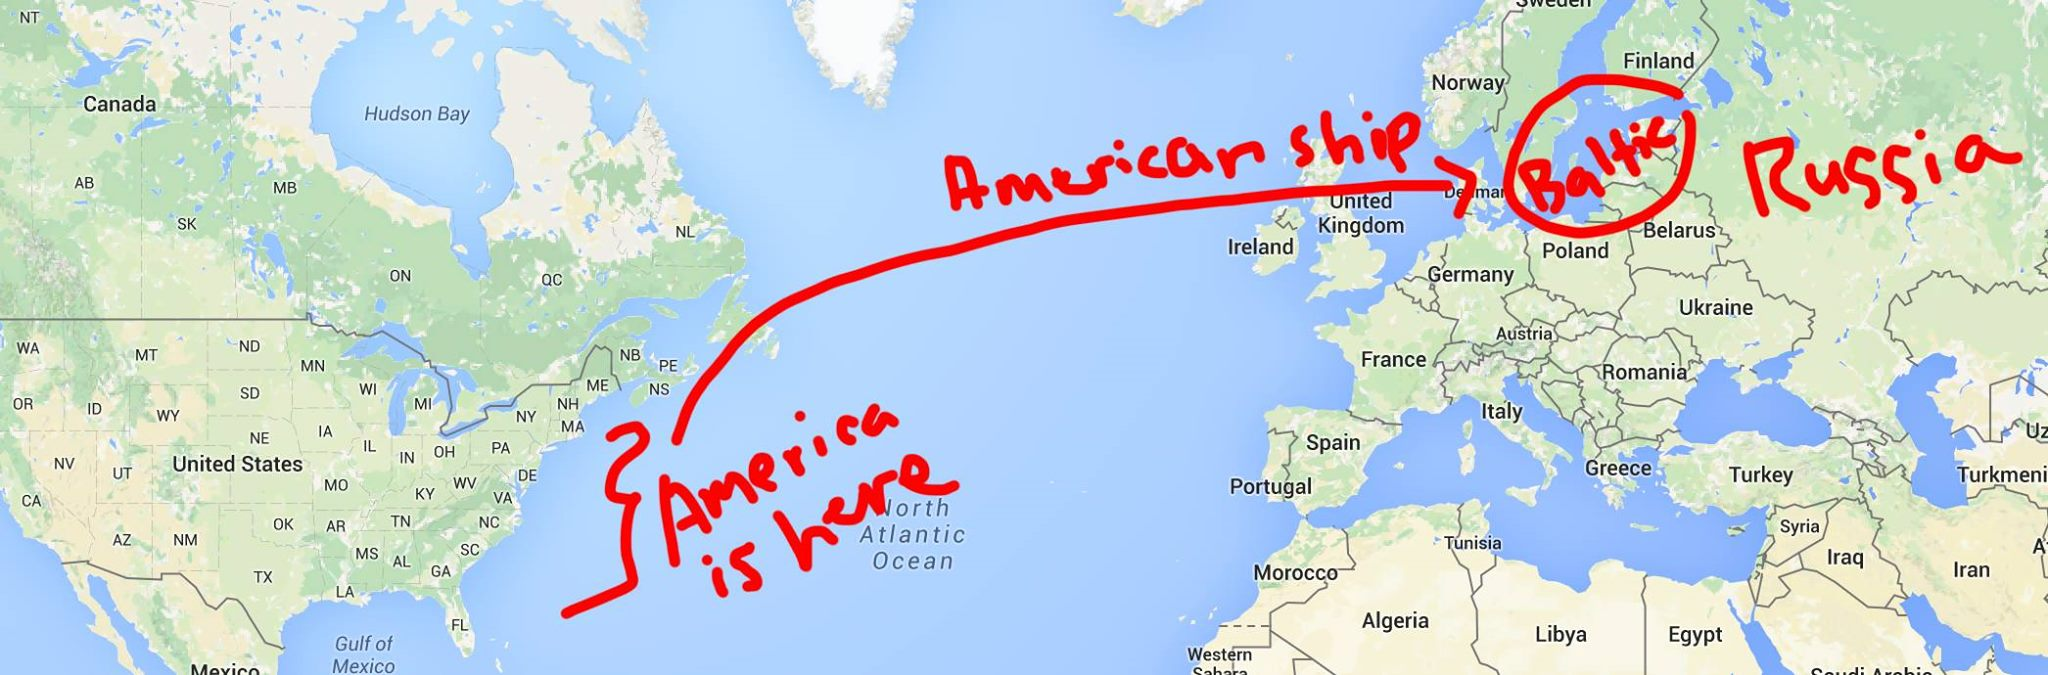 Breaking News American Warship Sails Dangerously Close To - World map russia us